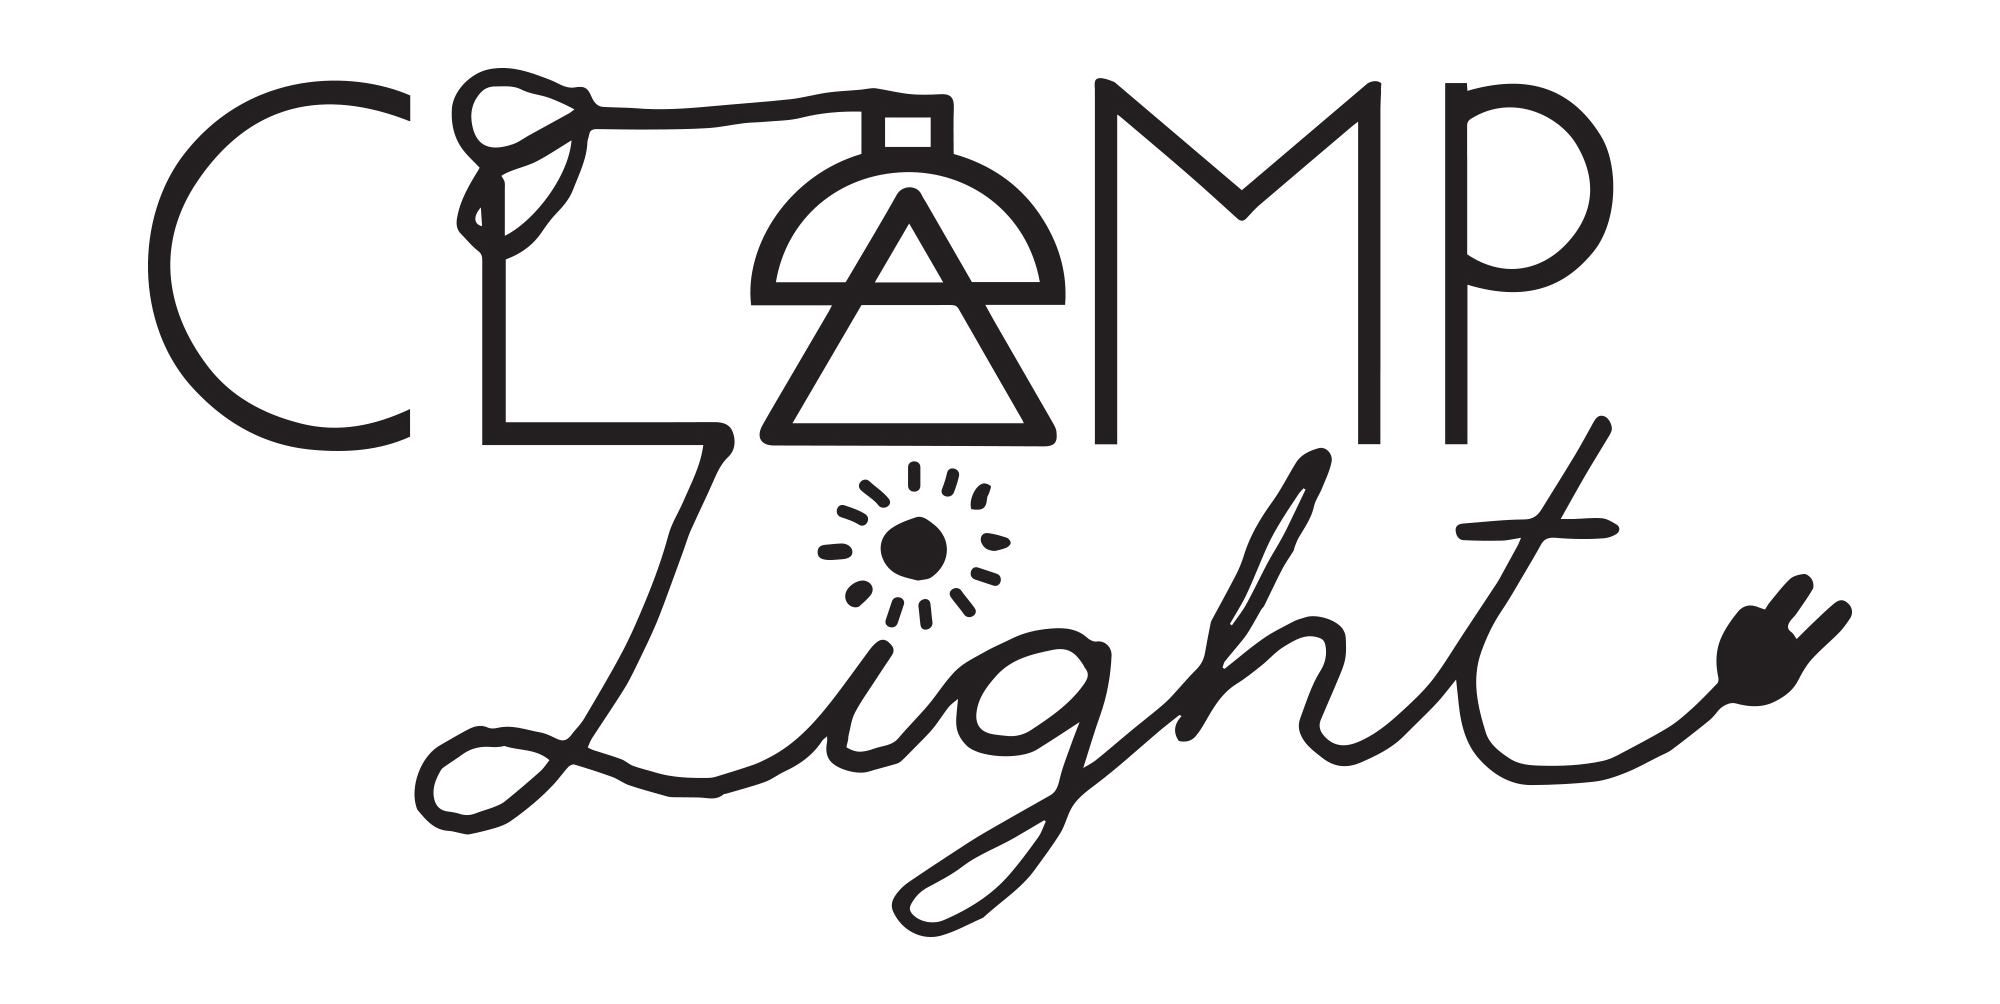 clamplightlogocropped2017.jpg